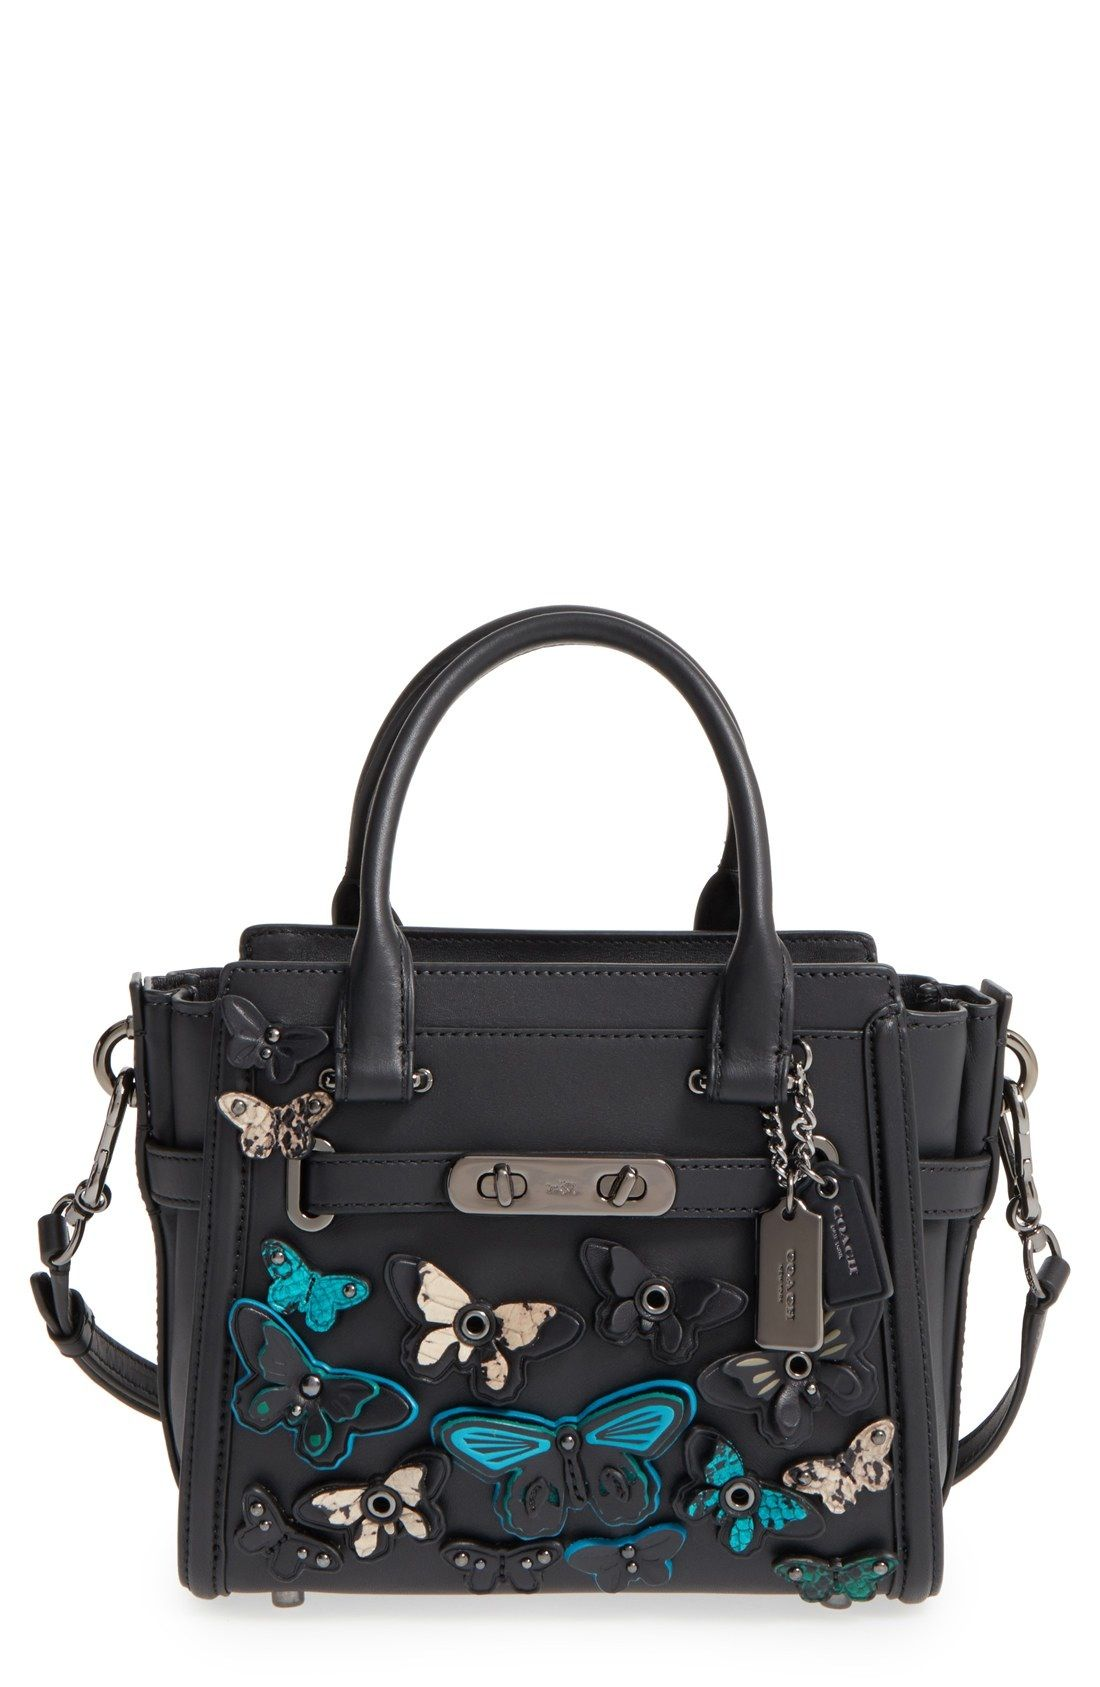 Coach Swagger 21 Erfly Satchel Available At Nordstrom